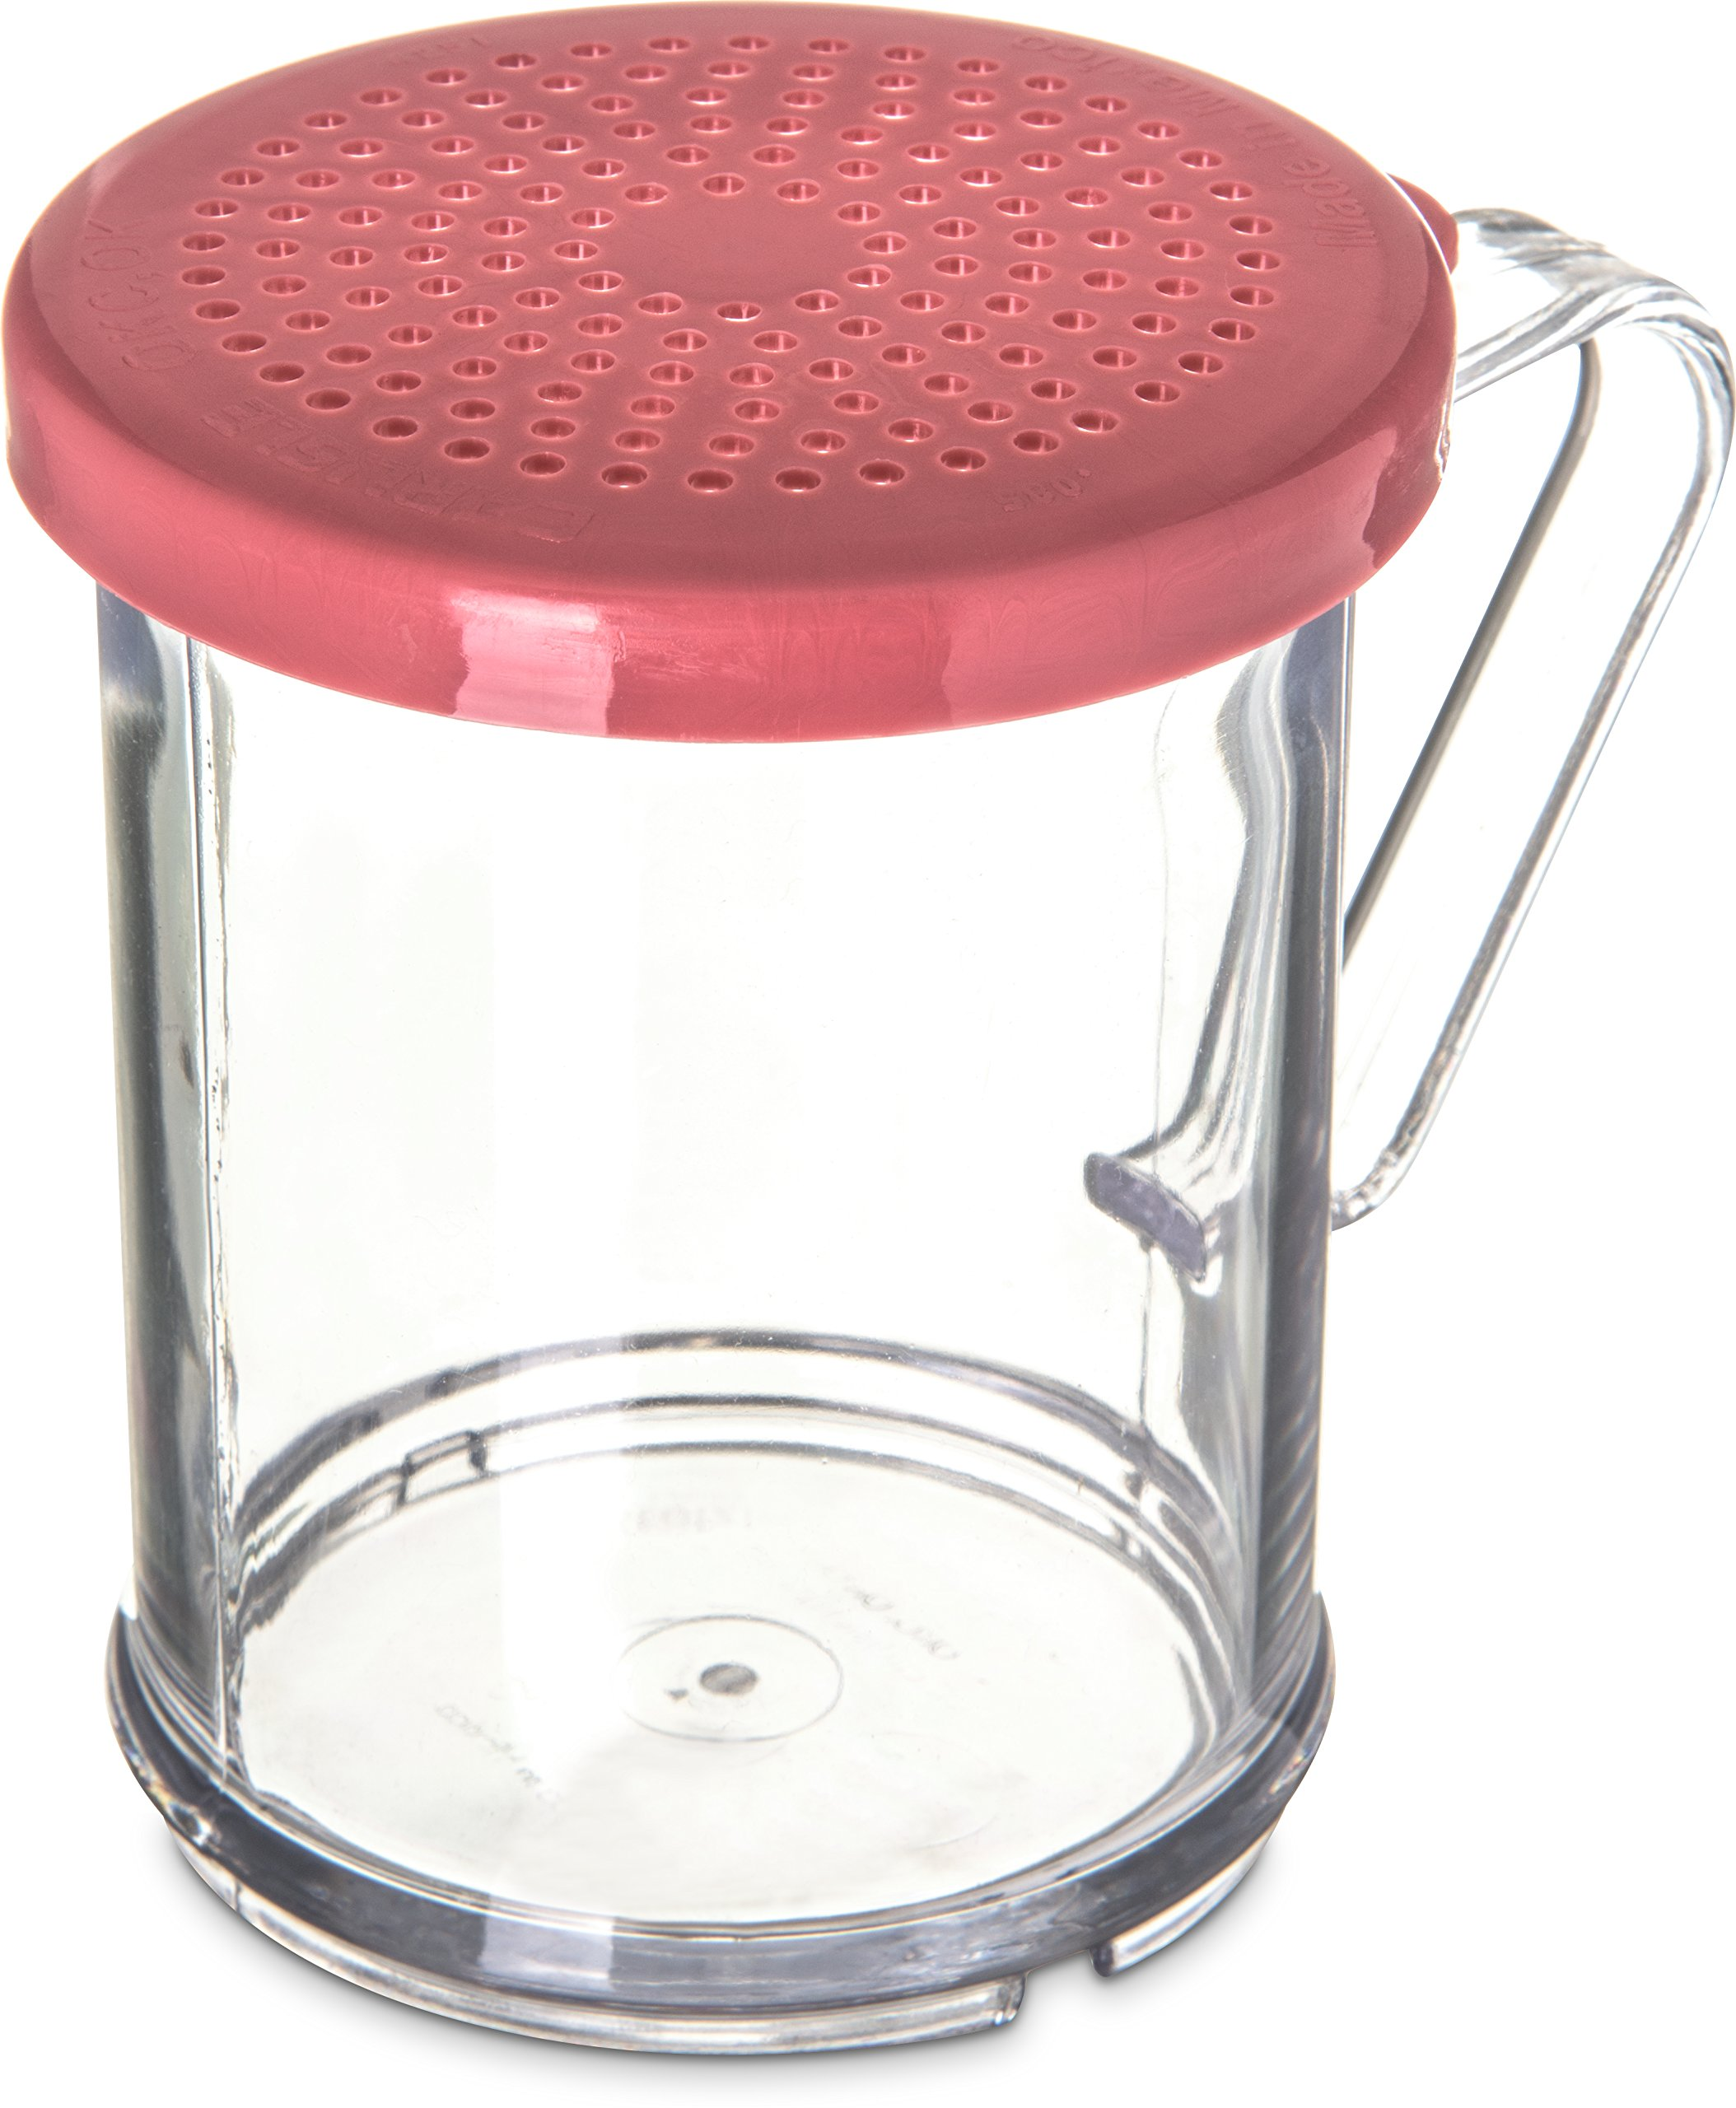 Carlisle 425055 Polycarbonate Shaker/Dredge with Medium Ground Lid, 1 Cup Capacity, Rose (Case of 12)